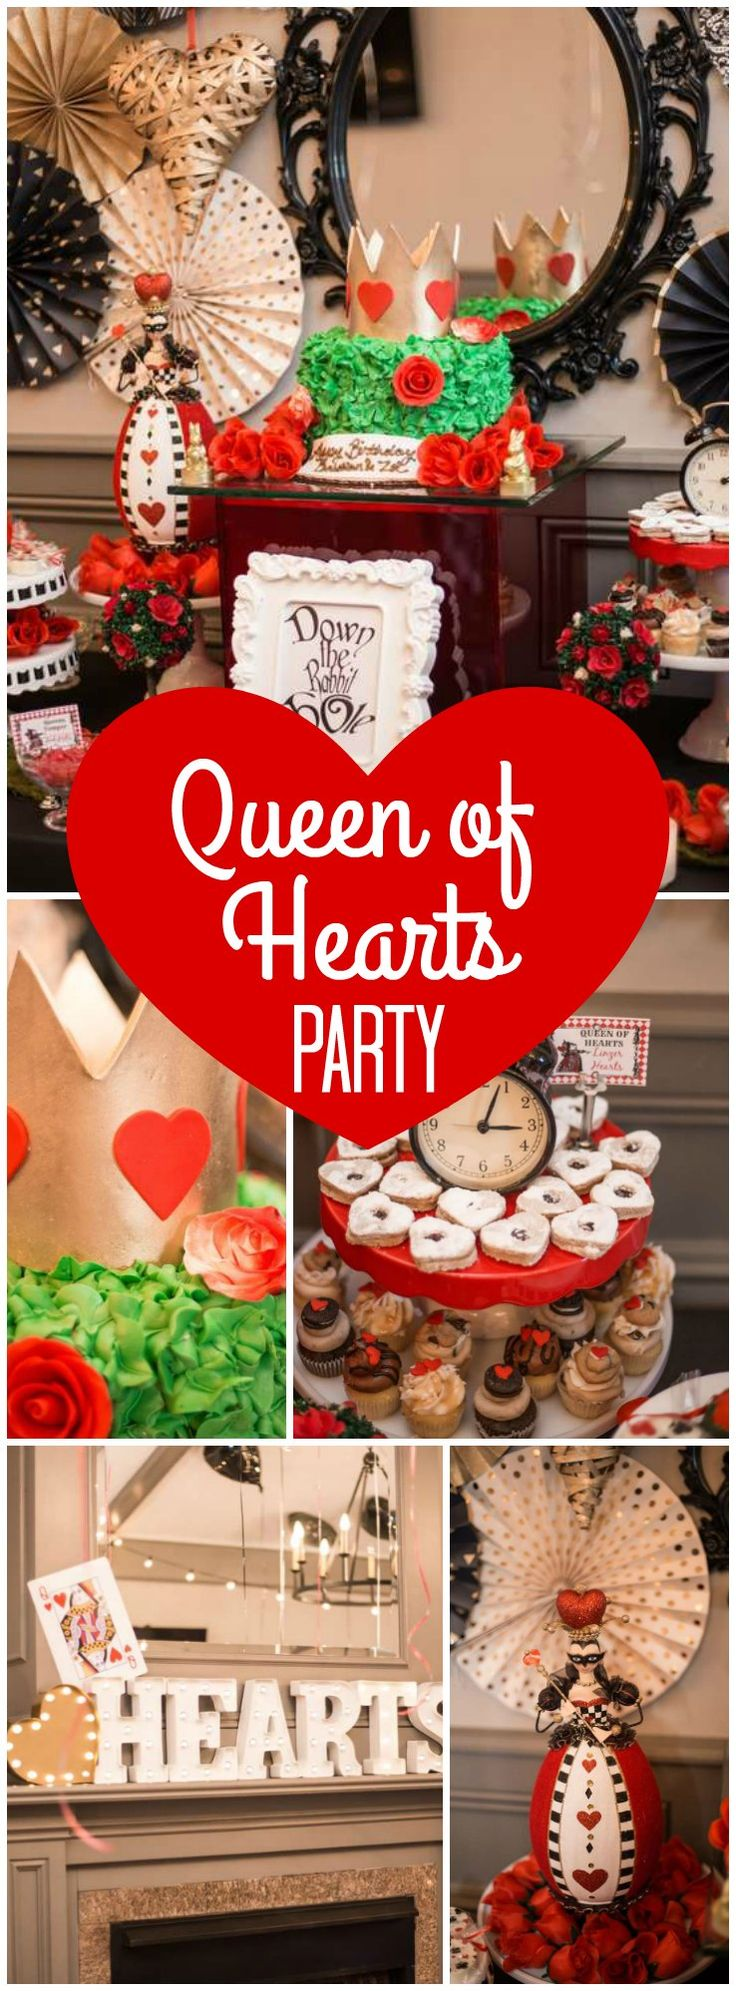 Best 25+ Party queen ideas on Pinterest | Royal birthday parties, Royal  party and DIY birthday crown